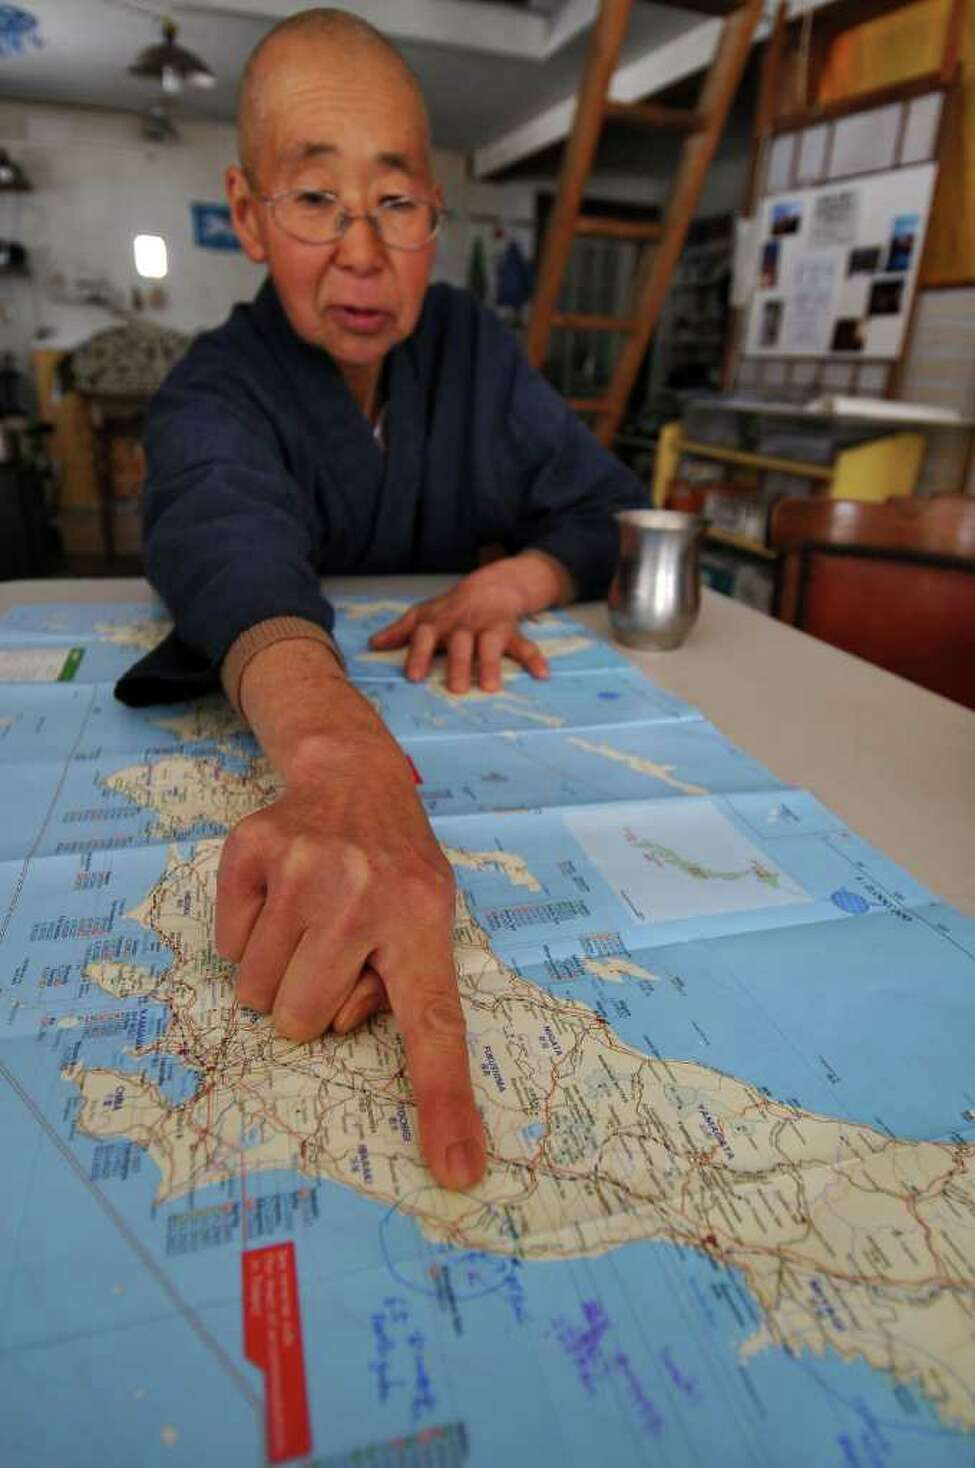 Buddhist nun Jun Yasuda talks about the crisis in Japan caused by the earthquake and tsunami, while looking at a map of the country at the Grafton Peace Pagoda on Tuesday March 15, 2011 in Grafton, NY. The area where the crippled nuclear power plant is located is circle on the map. She grew up in Tokyo. ( Philip Kamrass / Times Union )